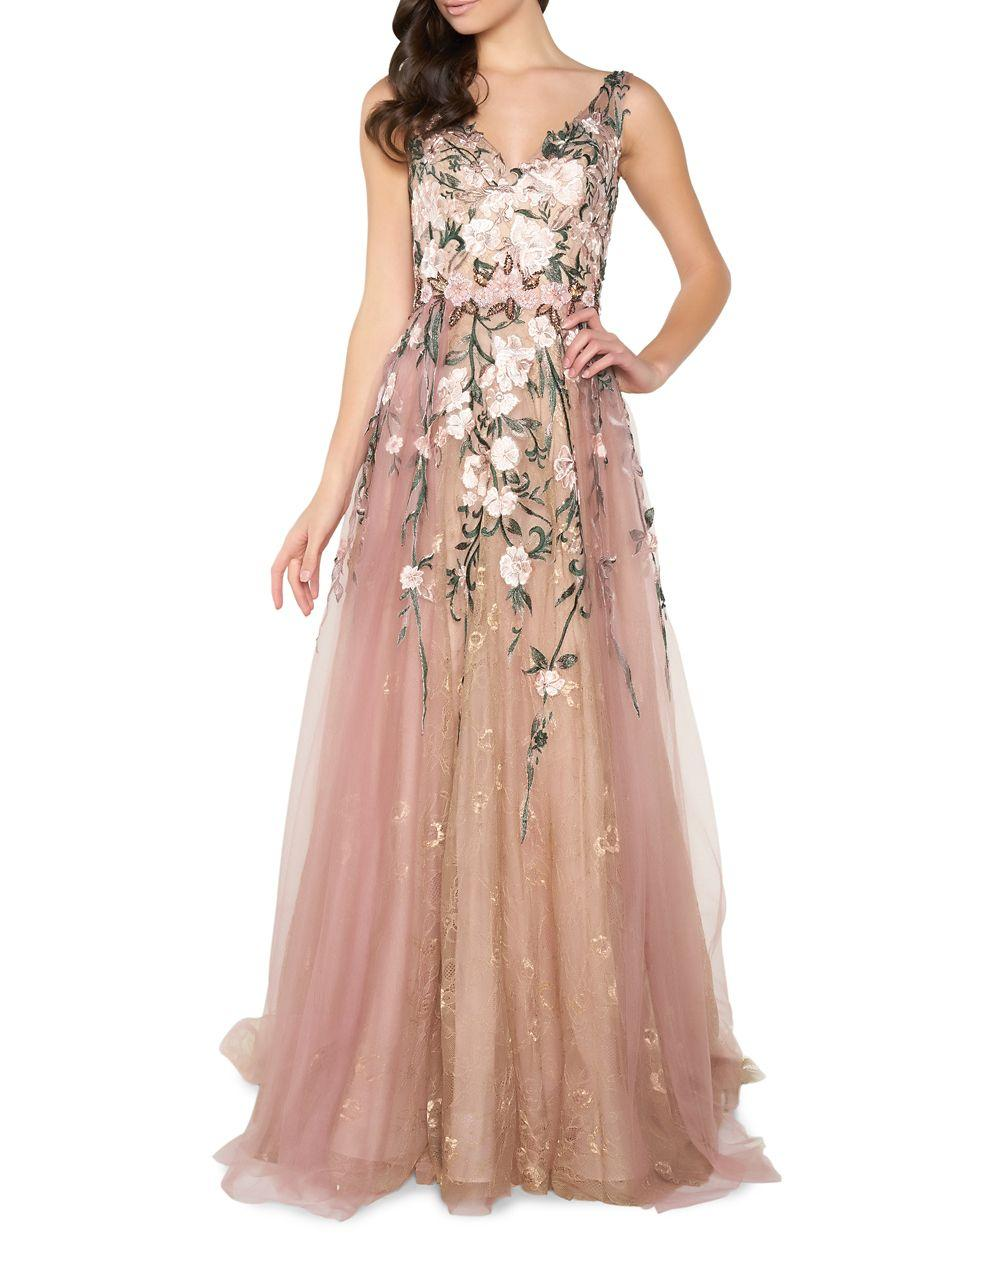 9b25a7ebc64d Mac Duggal Floral Embroidery Floor-length Gown in Pink - Lyst